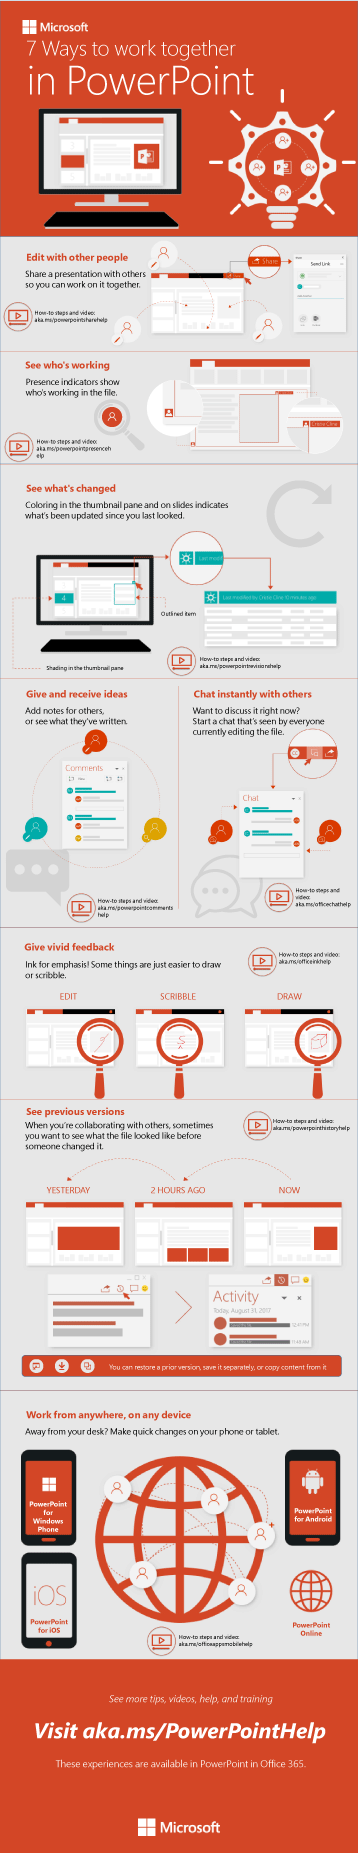 Ways to work together in PowerPoint infographic